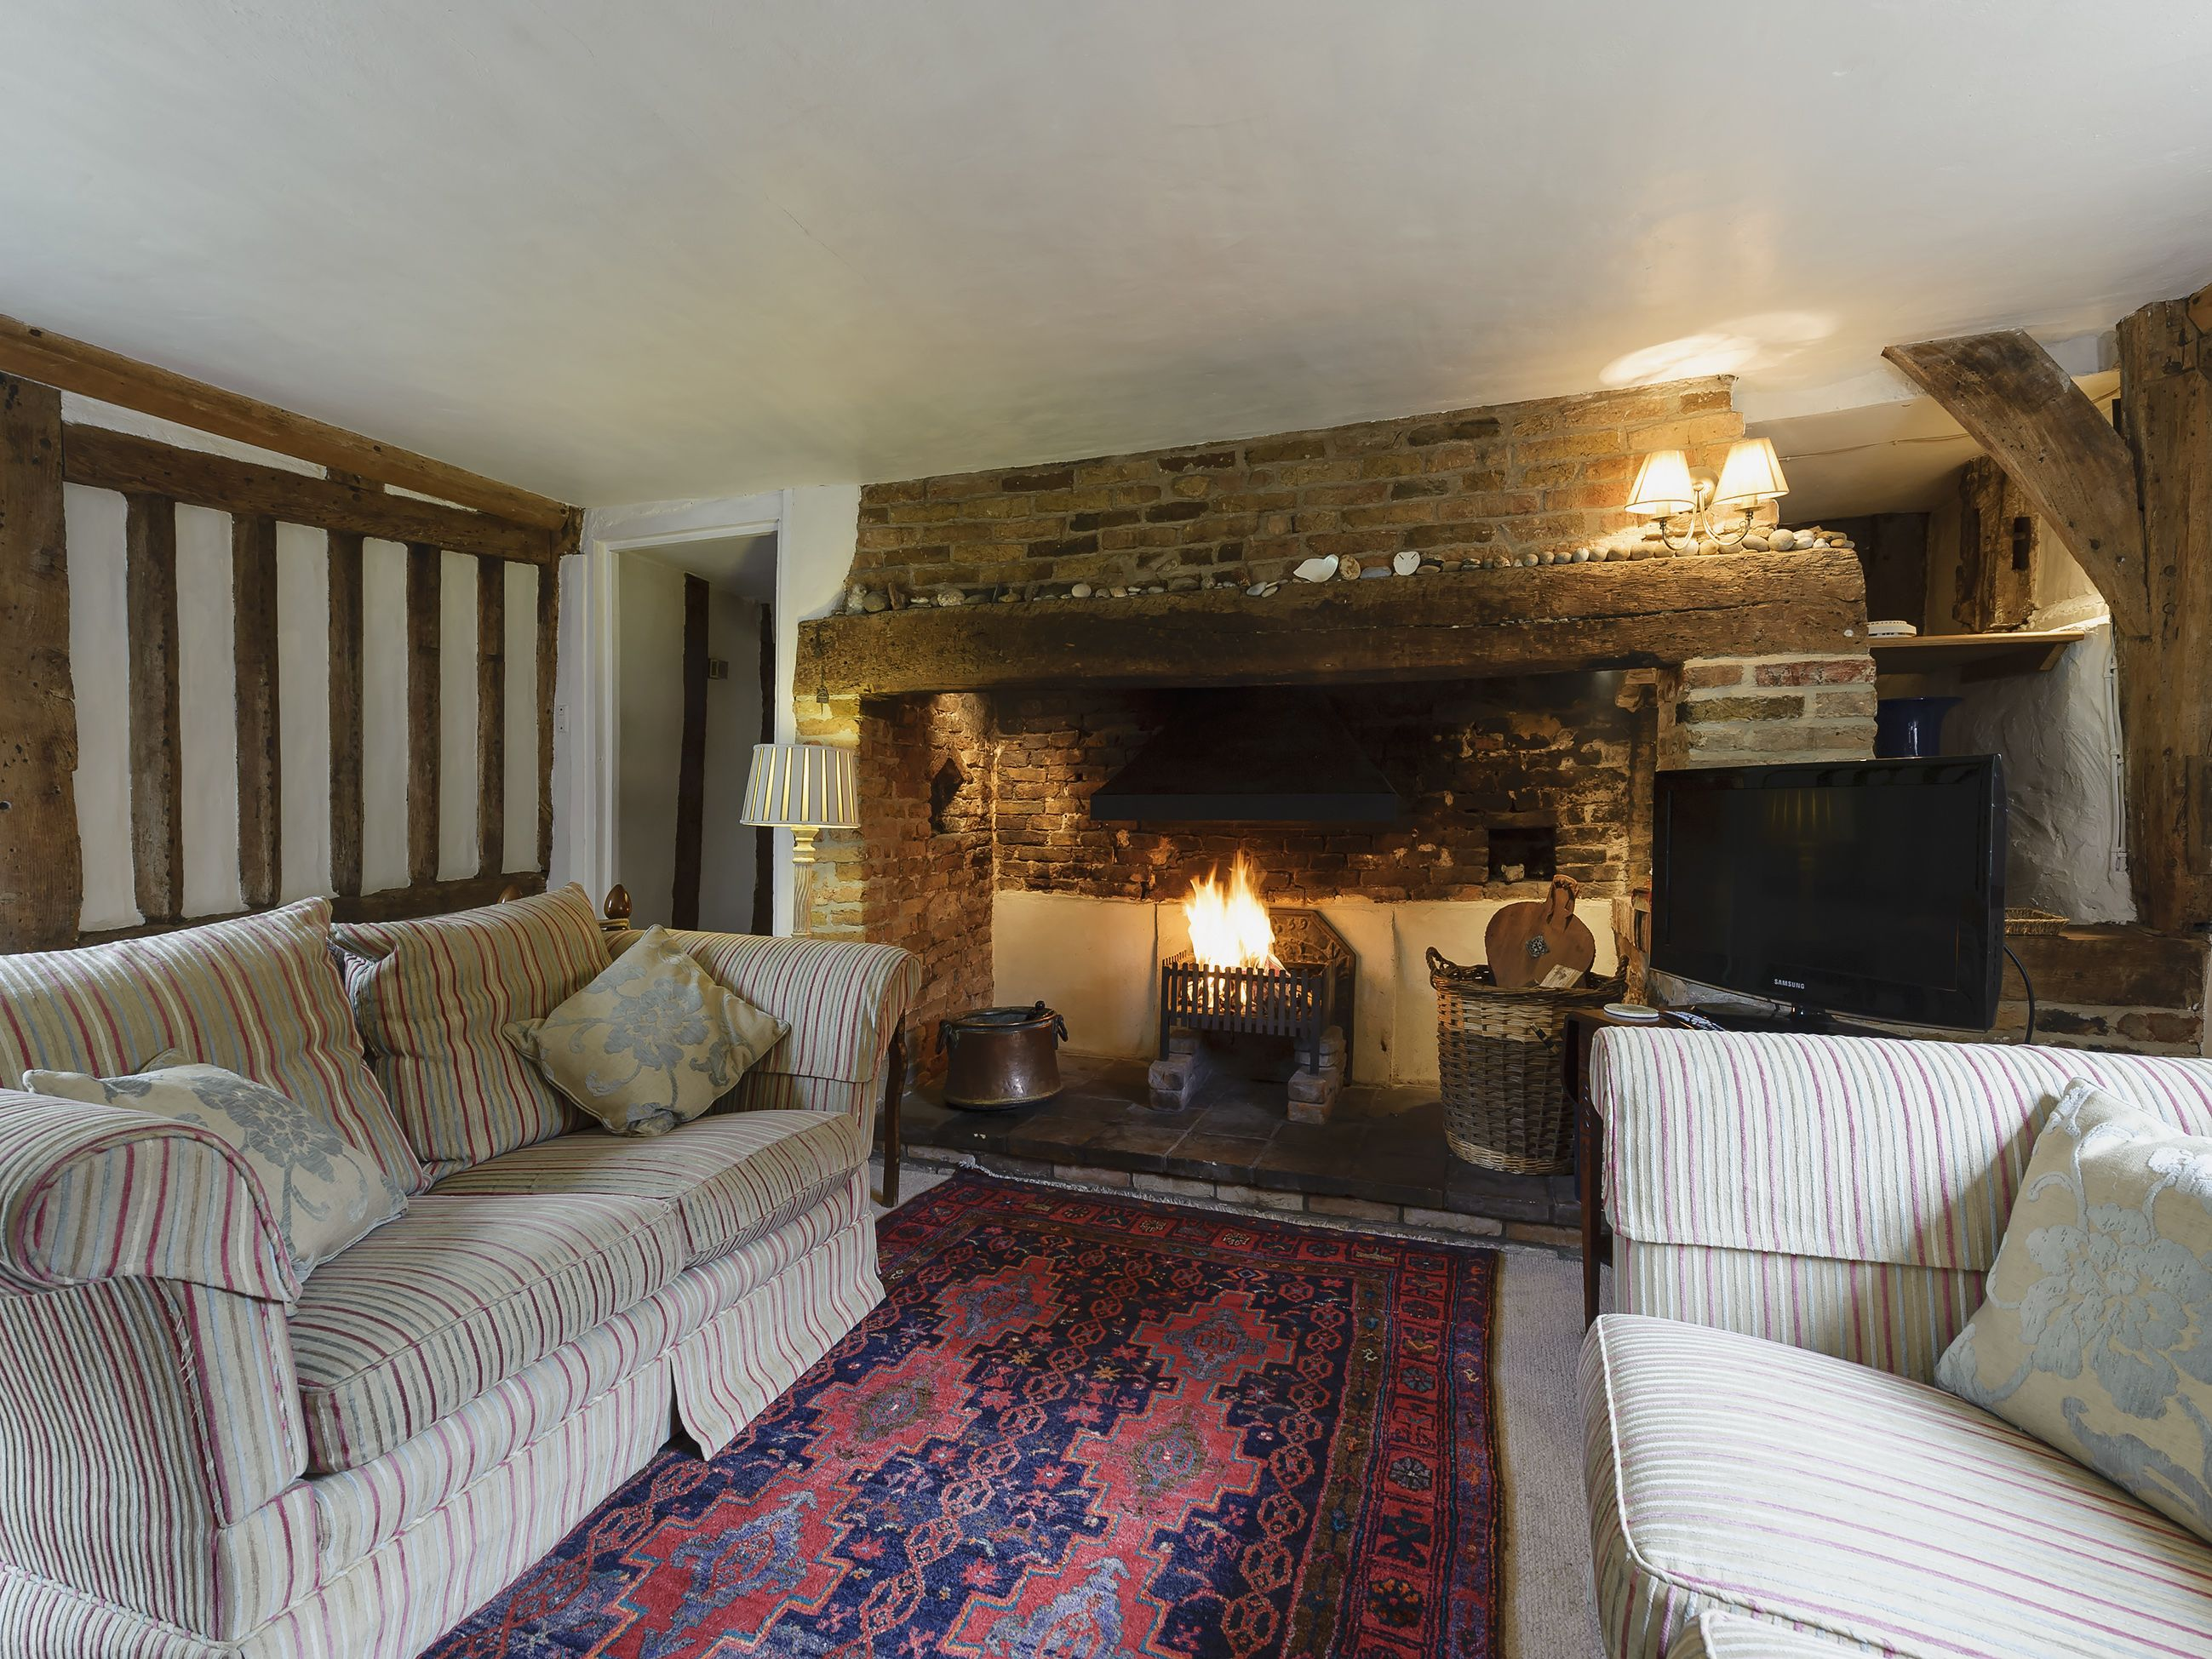 Thatched Cottage Ref Ukc2025 In Sternfield Near Aldeburgh Suffolk Cottages Com Thatched Cottage Cottage Country Interior